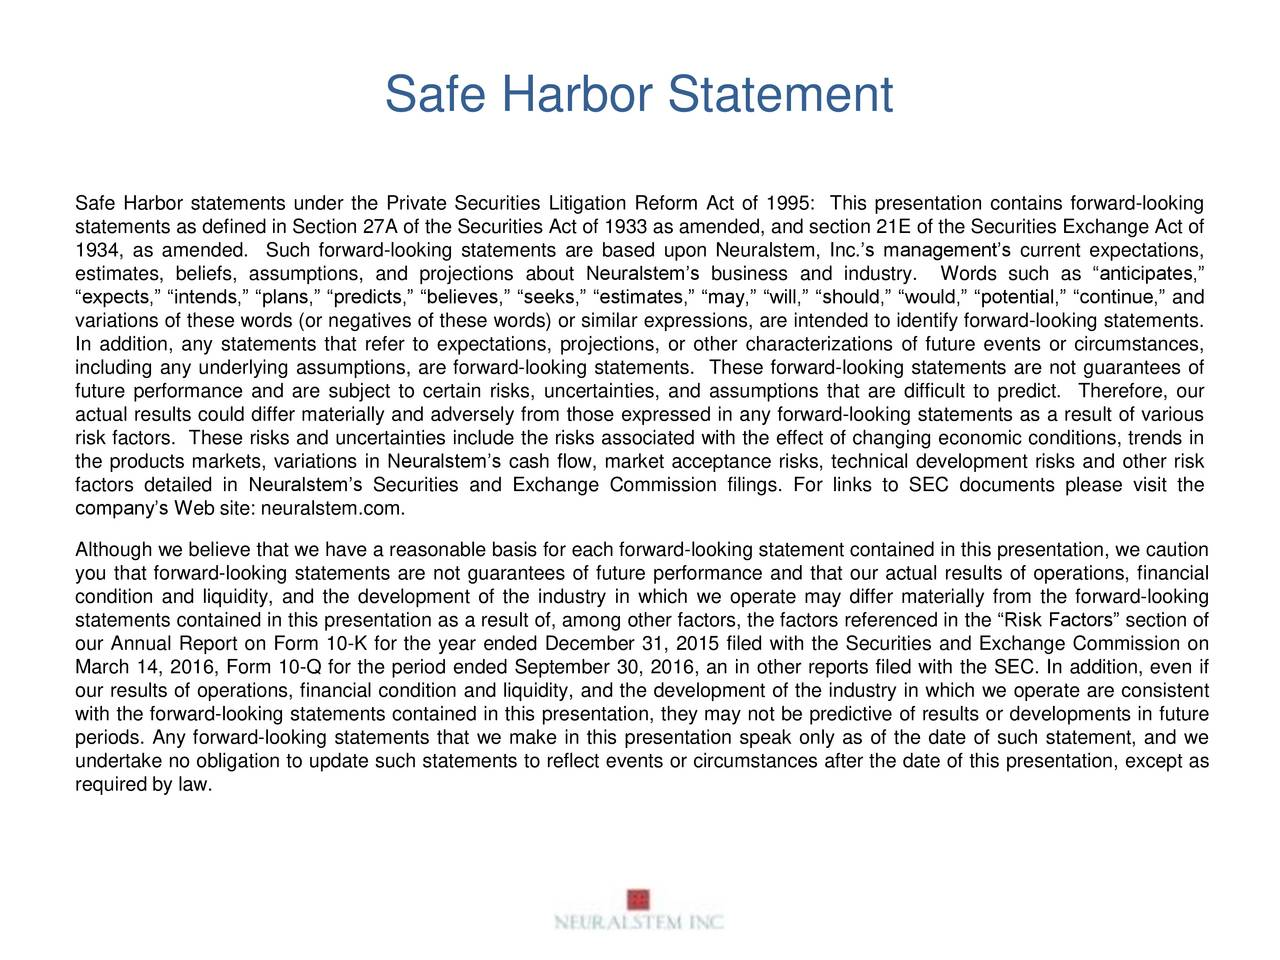 Safe Harbor statements under the Private Securities Litigation Reform Act of 1995: This presentation contains forward-looking statements as defined in Section 27A of the Securities Act of 1933 as amended, and section 21E of the Securities Exchange Act of 1934, as amended. Such forward-looking statements are based upon Neuralstem, Inc.s managements current expectations, estimates, beliefs, assumptions, and projections about Neuralstems business and industry. Words such as anticipates, expects, intends, plans, predicts, believes, seeks, estimates, may, will, should, would, potential, continue, and variations of these words (or negatives of these words) or similar expressions, are intended to identify forward-looking statements. In addition, any statements that refer to expectations, projections, or other characterizations of future events or circumstances, including any underlying assumptions, are forward-looking statements. These forward-looking statements are not guarantees of future performance and are subject to certain risks, uncertainties, and assumptions that are difficult to predict. Therefore, our actual results could differ materially and adversely from those expressed in any forward-looking statements as a result of various risk factors. These risks and uncertainties include the risks associated with the effect of changing economic conditions, trends in the products markets, variations in Neuralstems cash flow, market acceptance risks, technical development risks and other risk factors detailed in Neuralstems Securities and Exchange Commission filings. For links to SEC documents please visit the companys Web site: neuralstem.com. Although we believe that we have a reasonable basis for each forward-looking statement contained in this presentation, we caution you that forward-looking statements are not guarantees of future performance and that our actual results of operations, financial condition and liquidity, and the development of the industry in which we operate may differ materially from the forward-looking statements contained in this presentation as a result of, among other factors, the factors referenced in the Risk Factors section of our Annual Report on Form 10-K for the year ended December 31, 2015 filed with the Securities and Exchange Commission on March 14, 2016, Form 10-Q for the period ended September 30, 2016, an in other reports filed with the SEC. In addition, even if our results of operations, financial condition and liquidity, and the development of the industry in which we operate are consistent with the forward-looking statements contained in this presentation, they may not be predictive of results or developments in future periods. Any forward-looking statements that we make in this presentation speak only as of the date of such statement, and we undertake no obligation to update such statements to reflect events or circumstances after the date of this presentation, except as required by law.